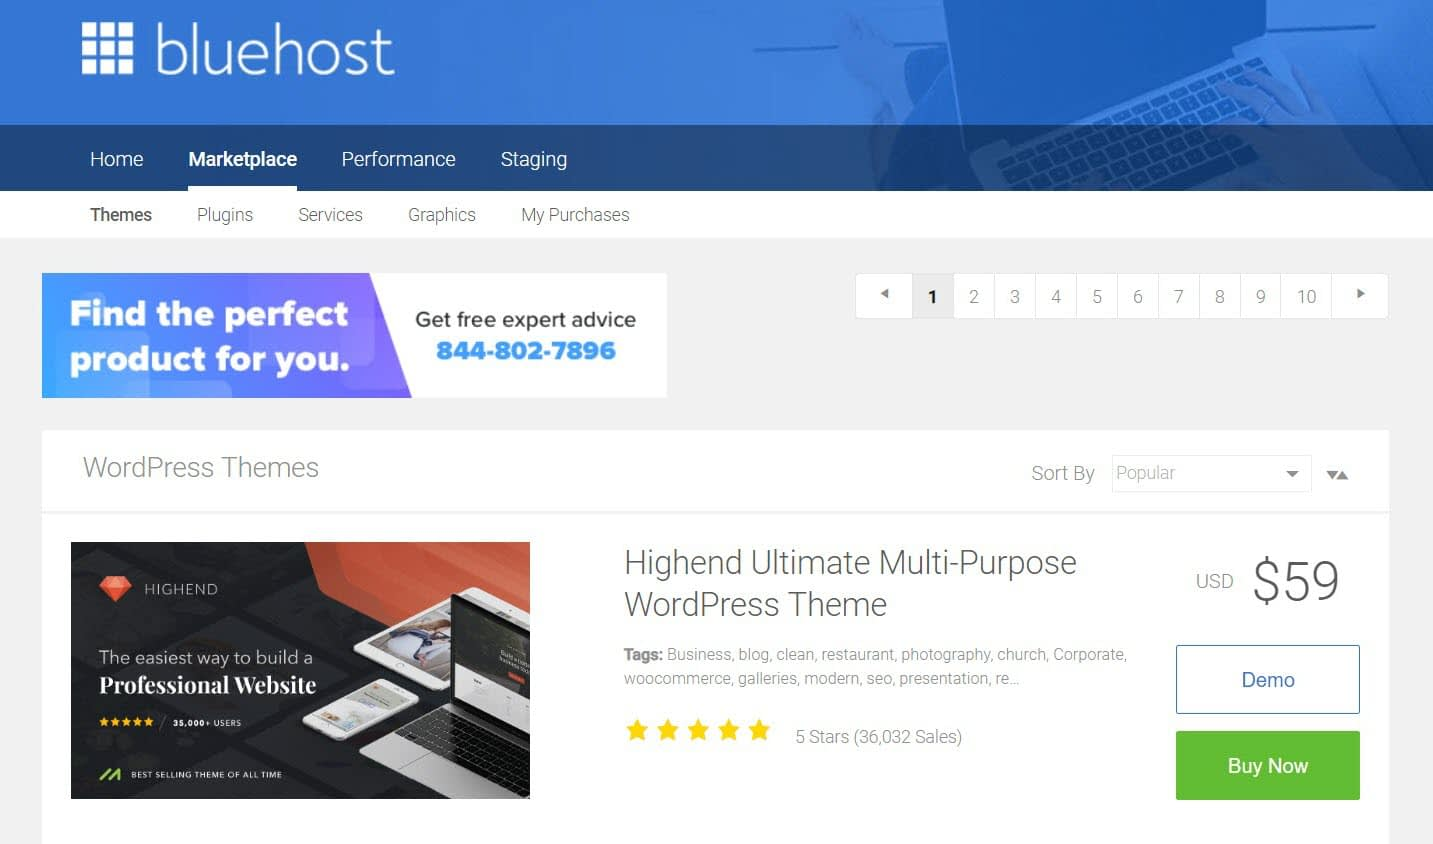 The Bluehost marketplace after you install WordPress